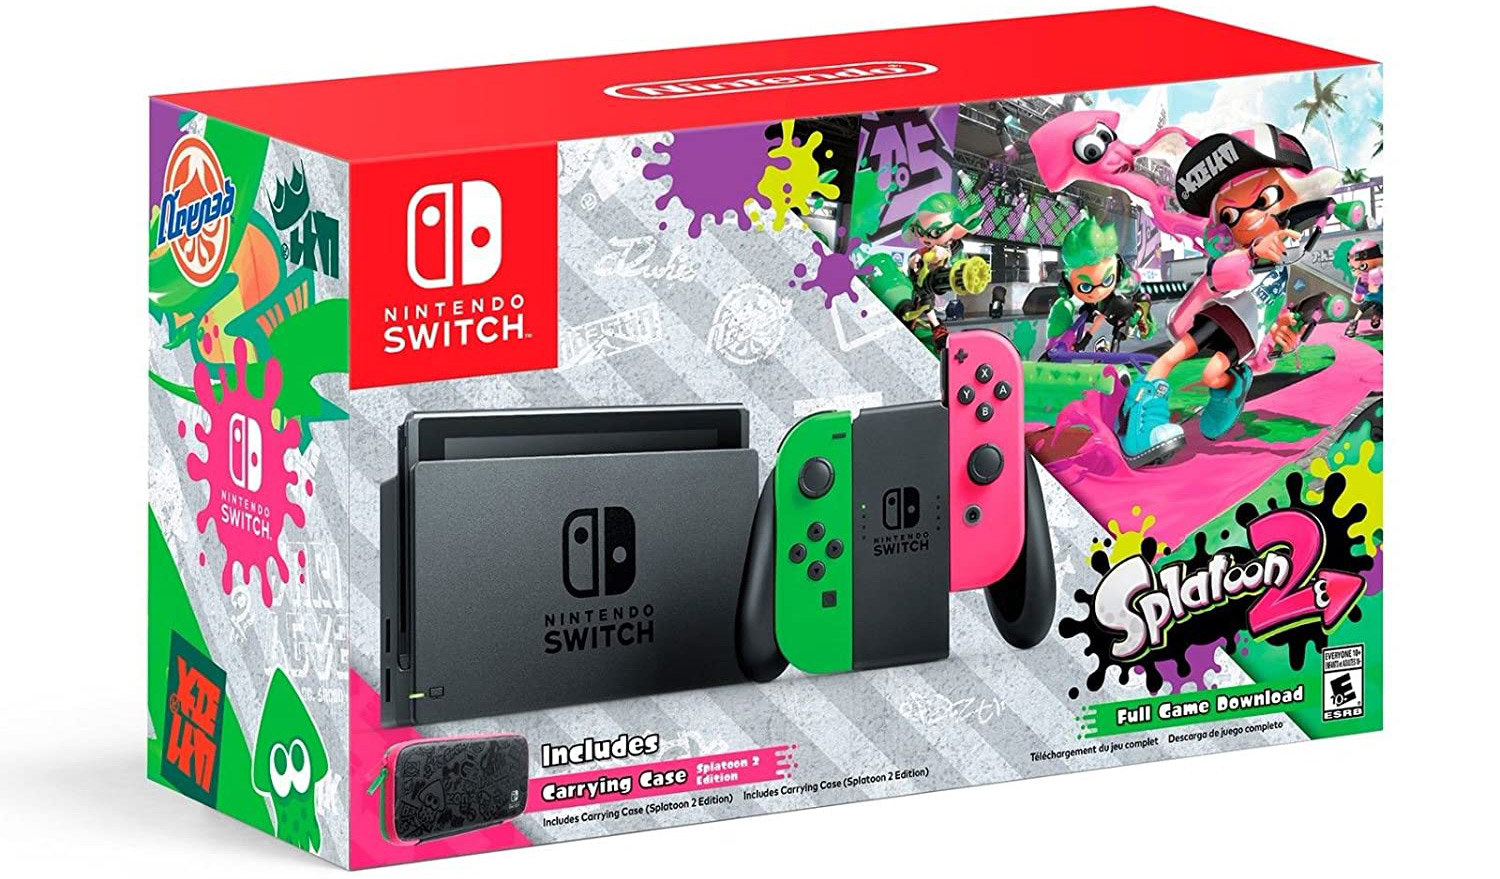 Quelle: Nintendo - Nintendo Switch: Splatoon 2 - Limited Edition